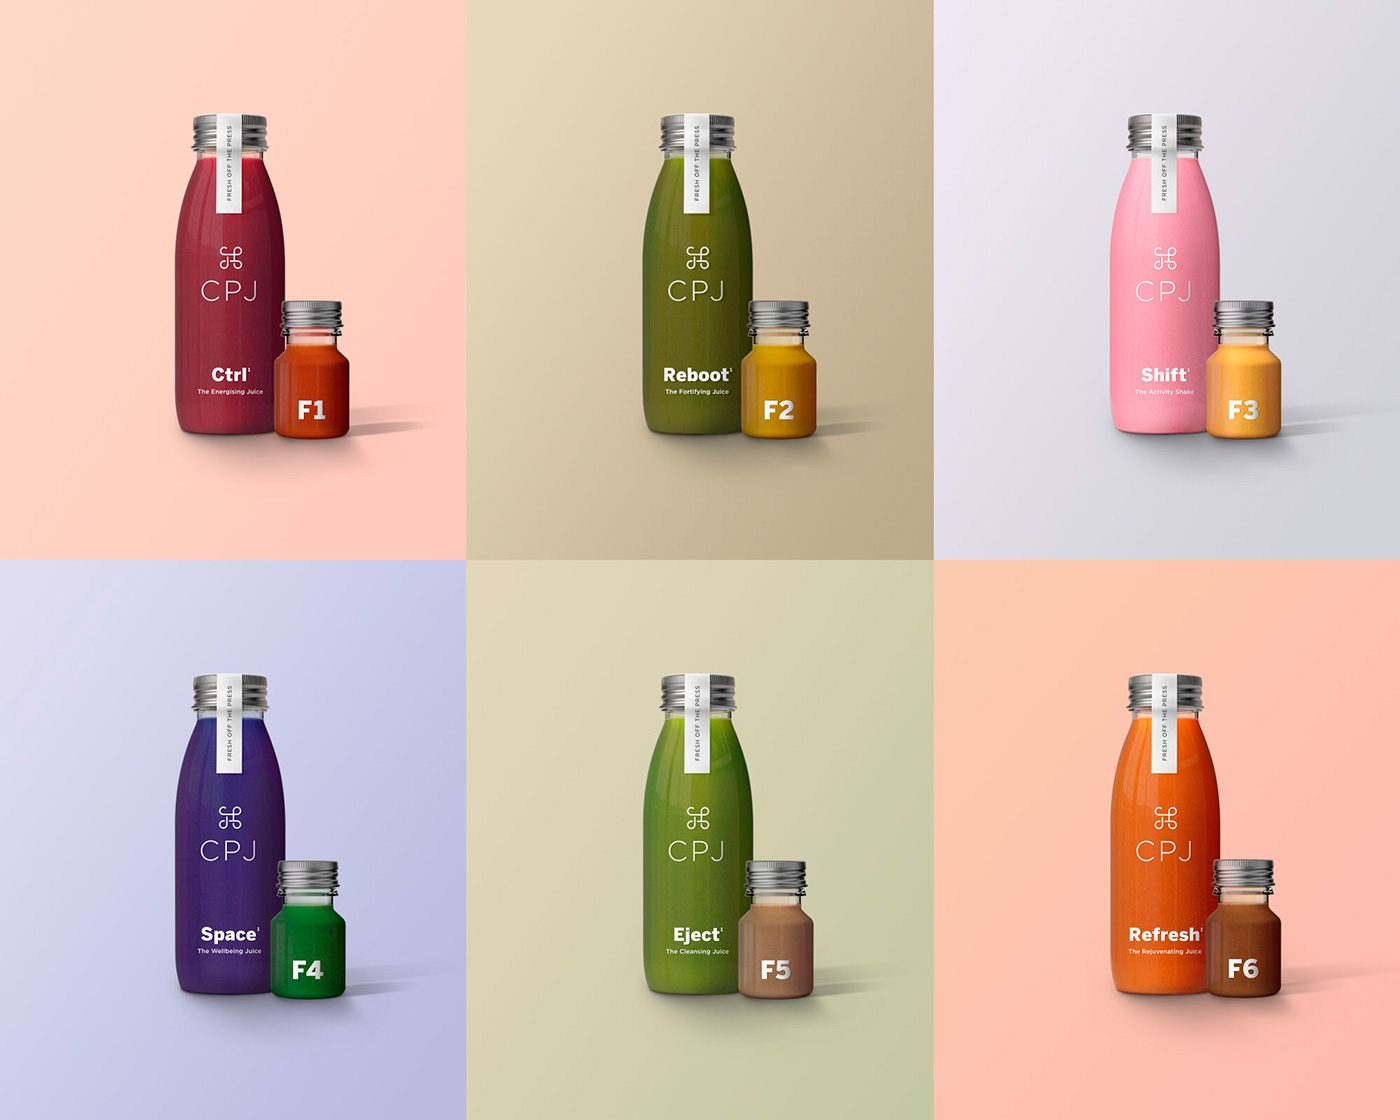 CPJ Cold Pressed Juice